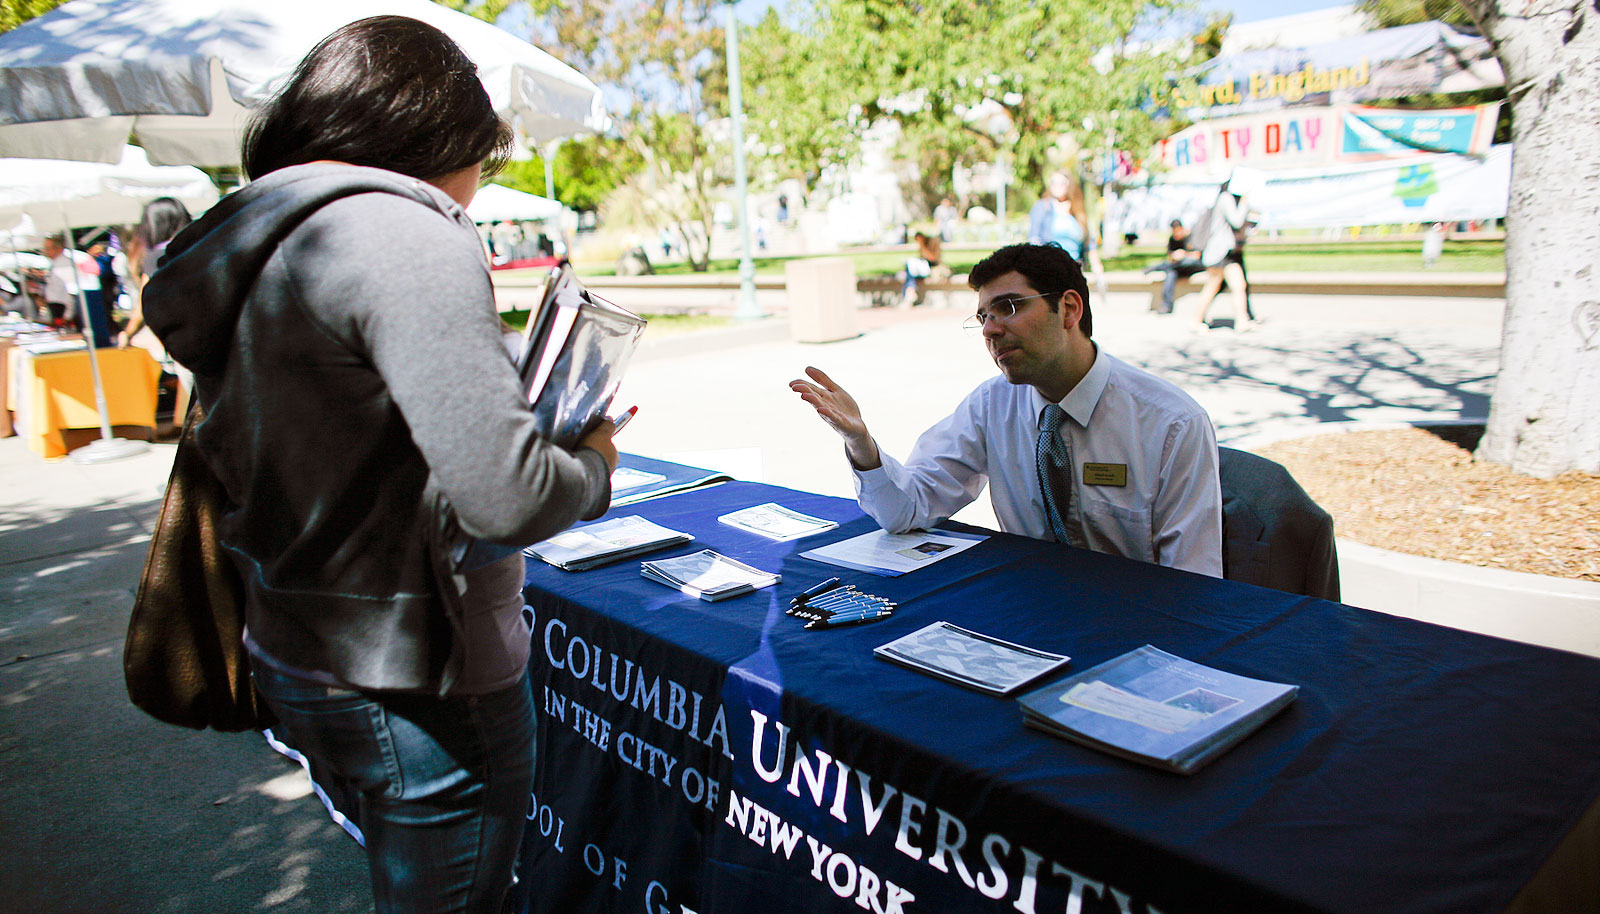 A student speaks with a representative from Columbia University.